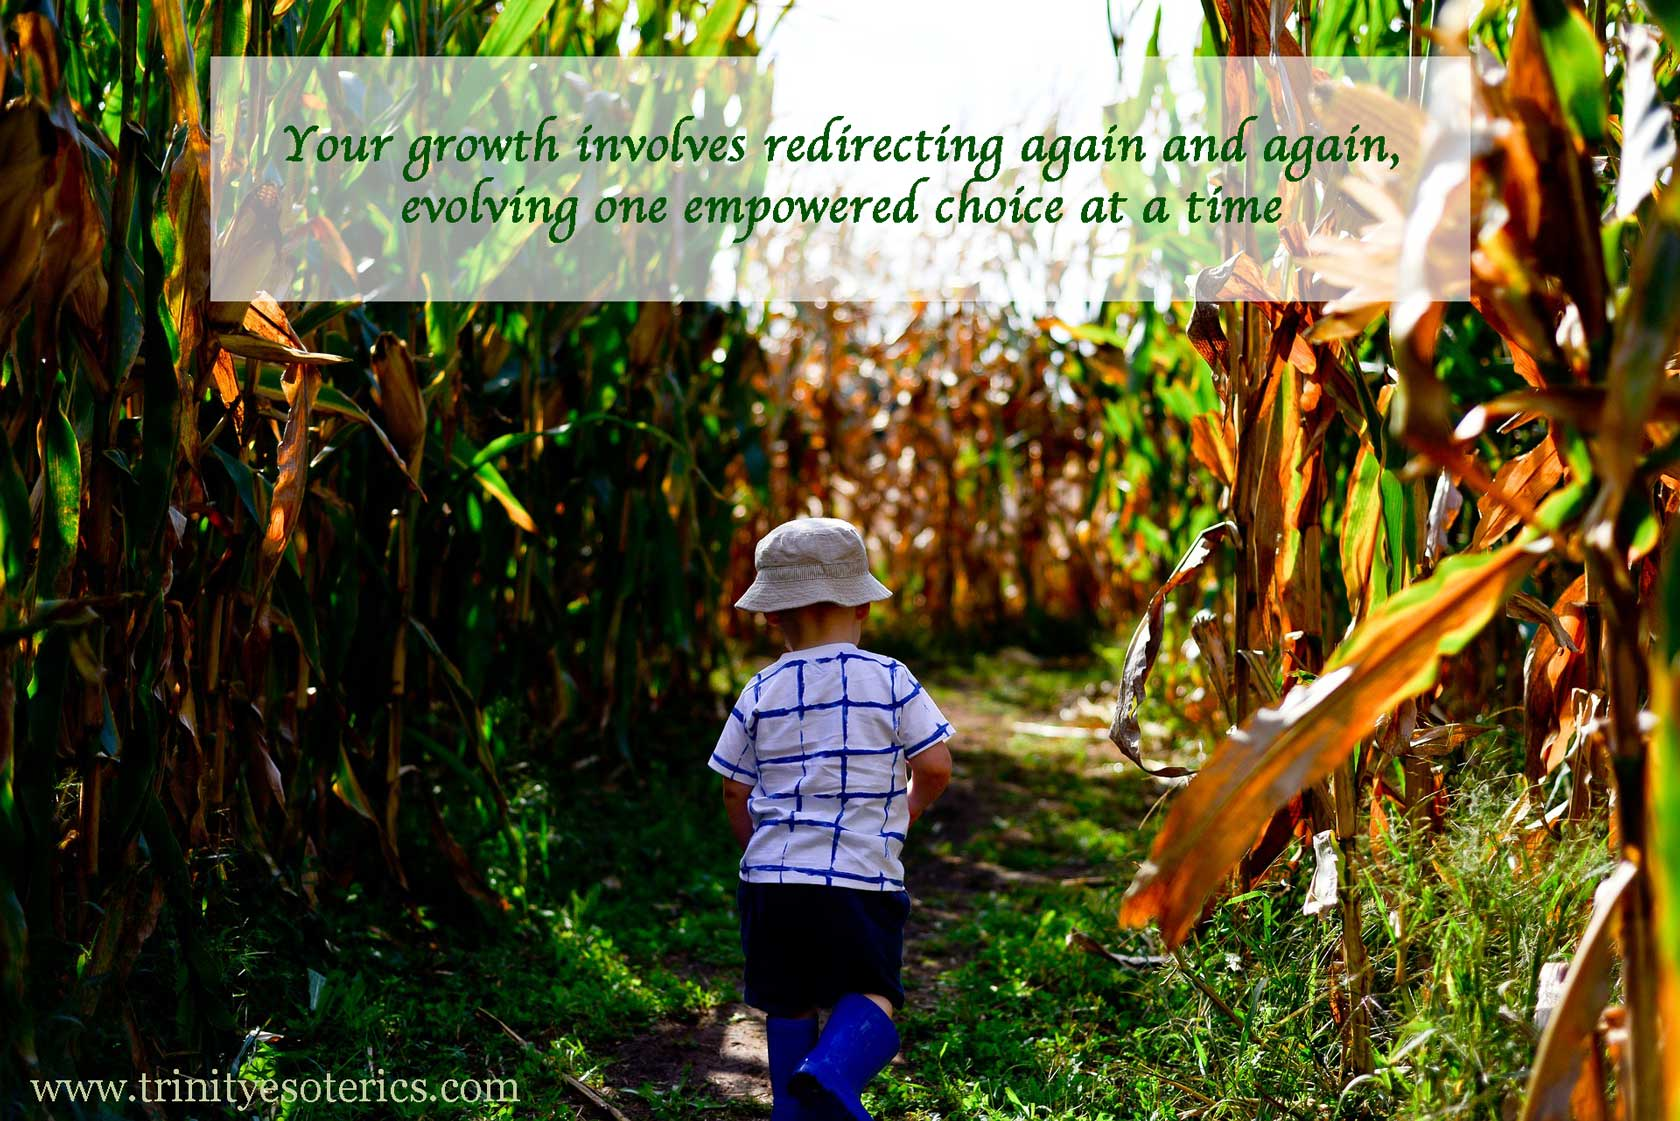 child in corn maze trinity esoterics